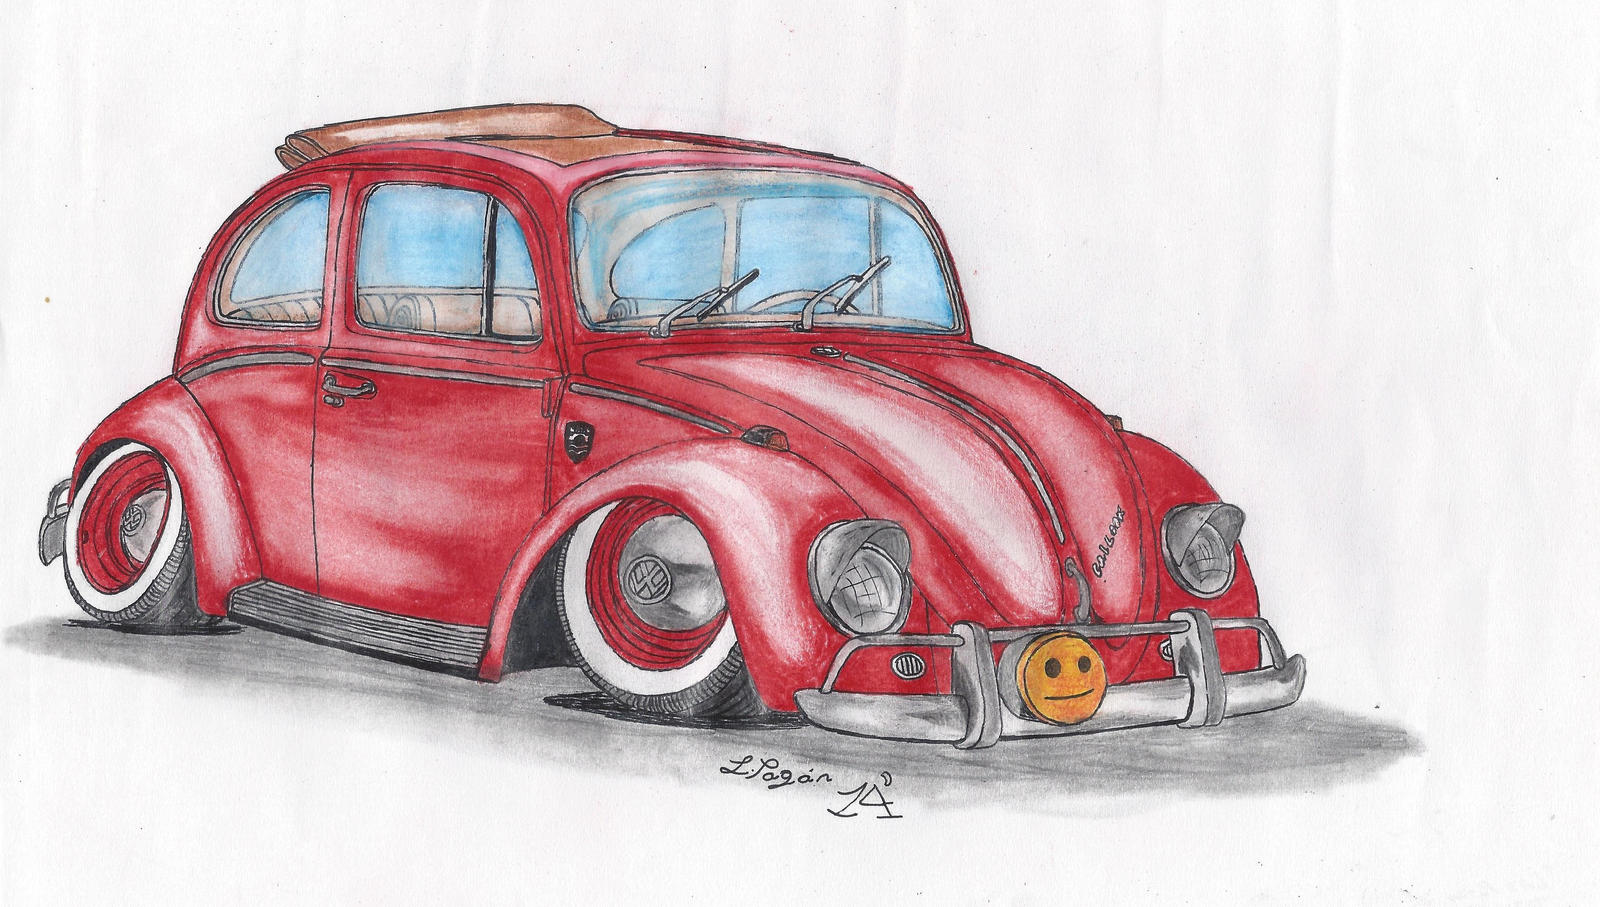 65 VW Beetle 1300 Stanced By Mister Lou